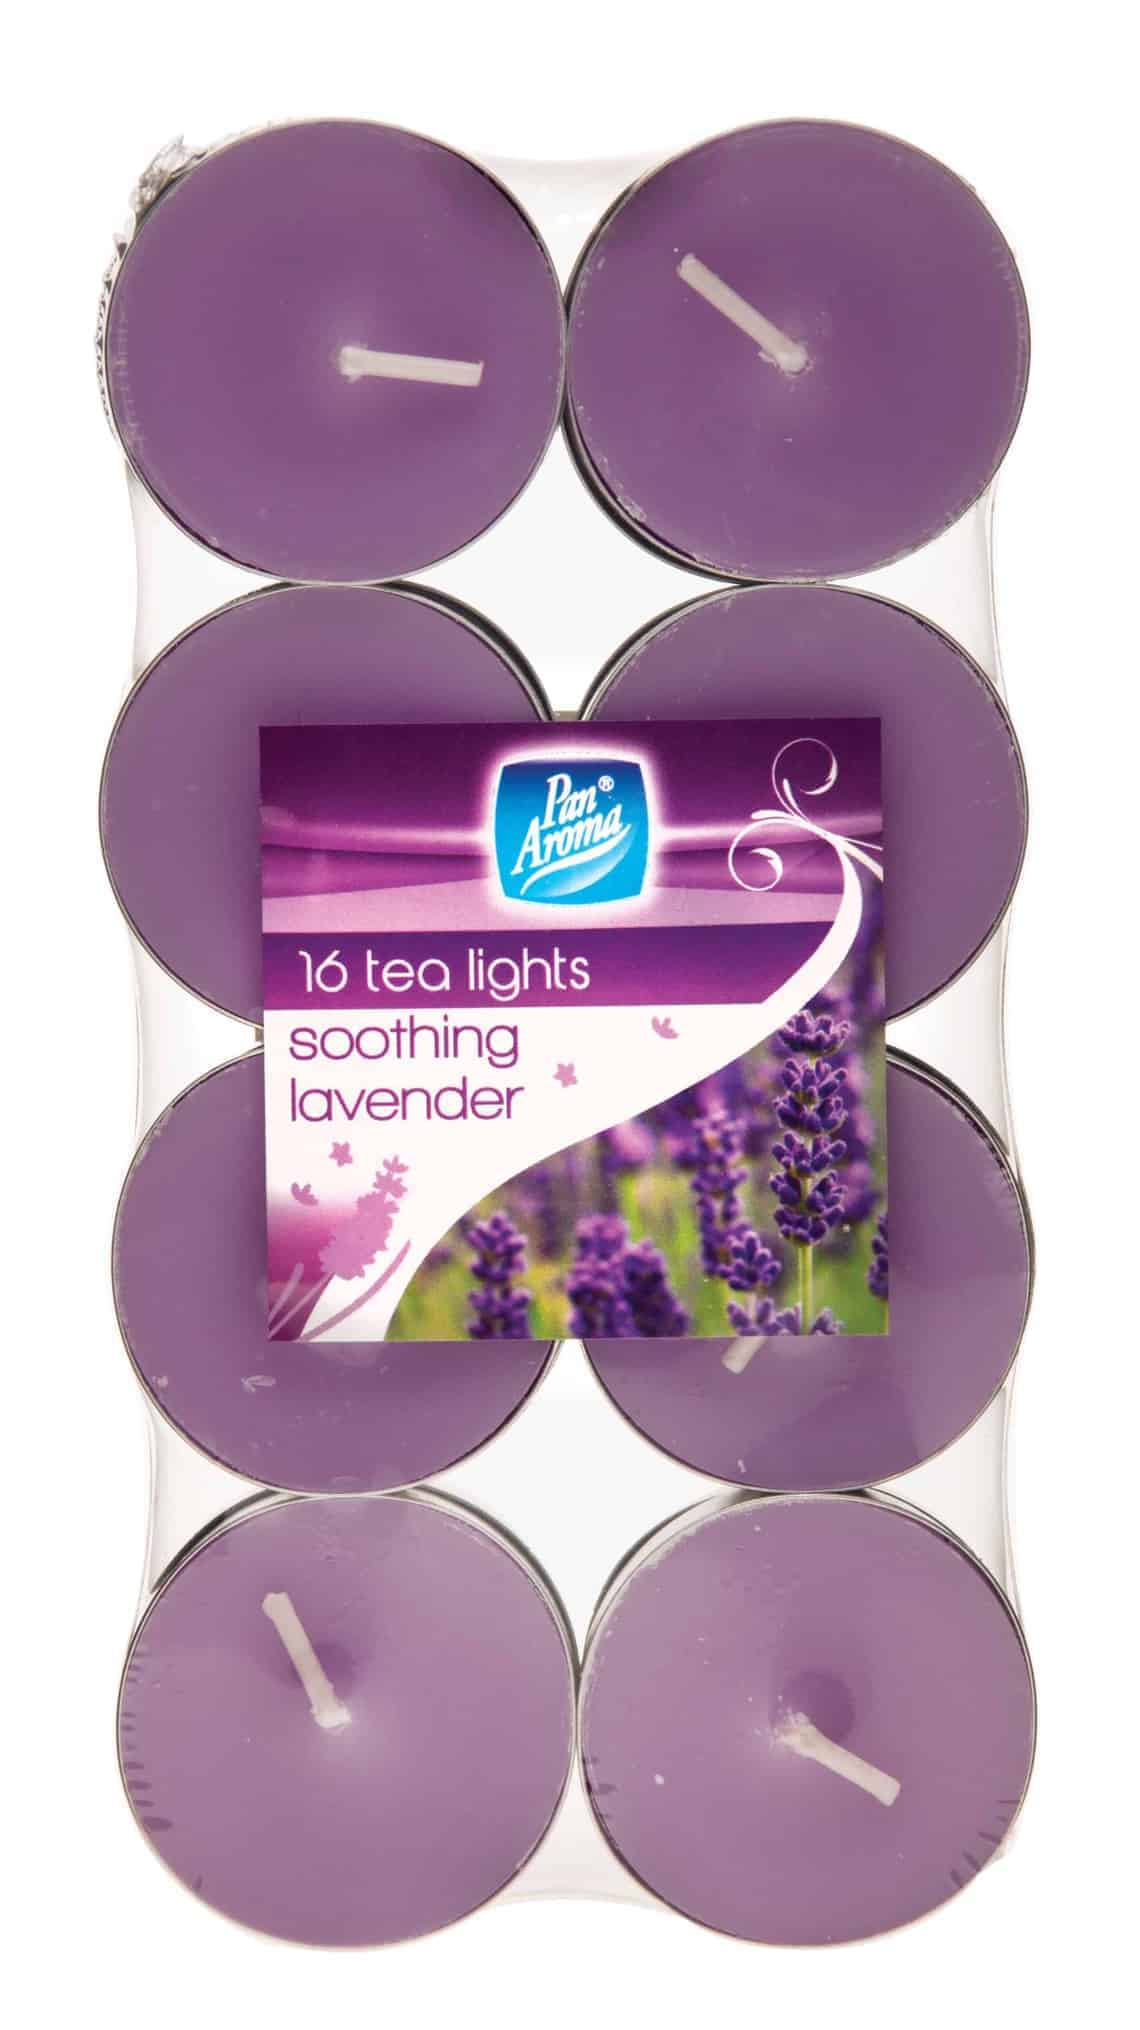 Pan Aroma 16 Pack Colour Tea-Lights - Soothing Lavender